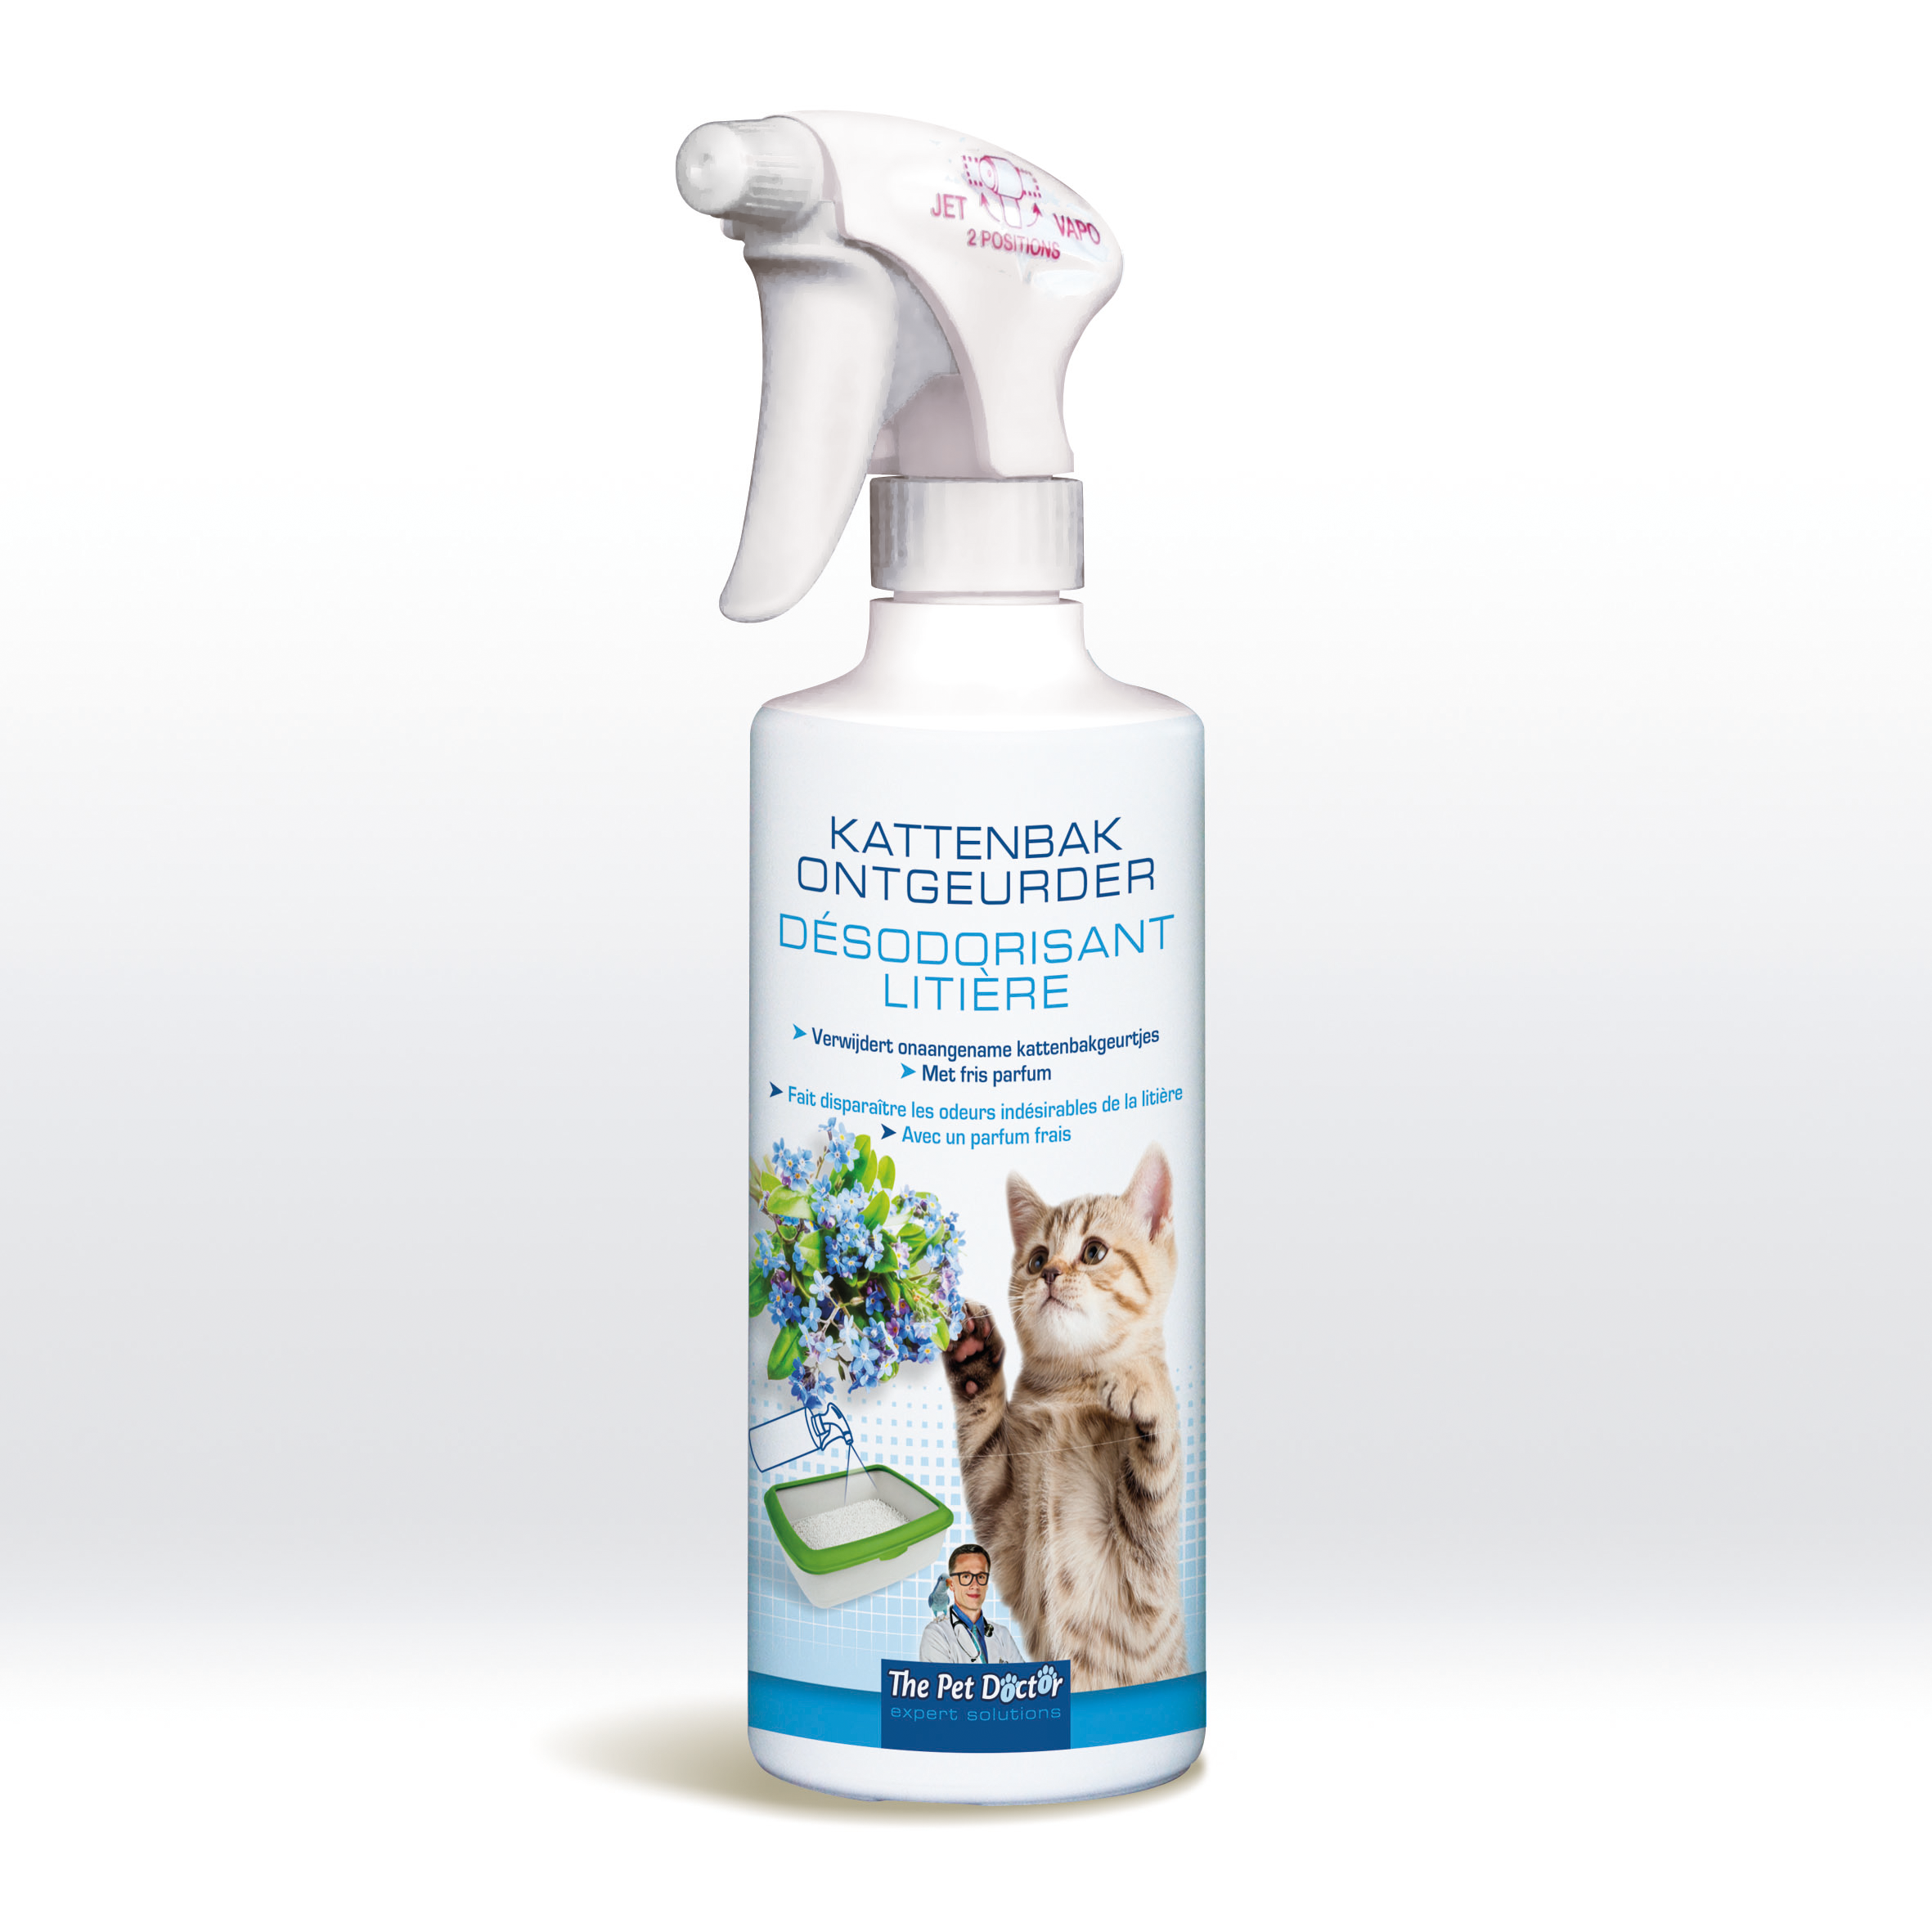 The Pet Doctor Kattenbak Ontgeurder 500 ml image